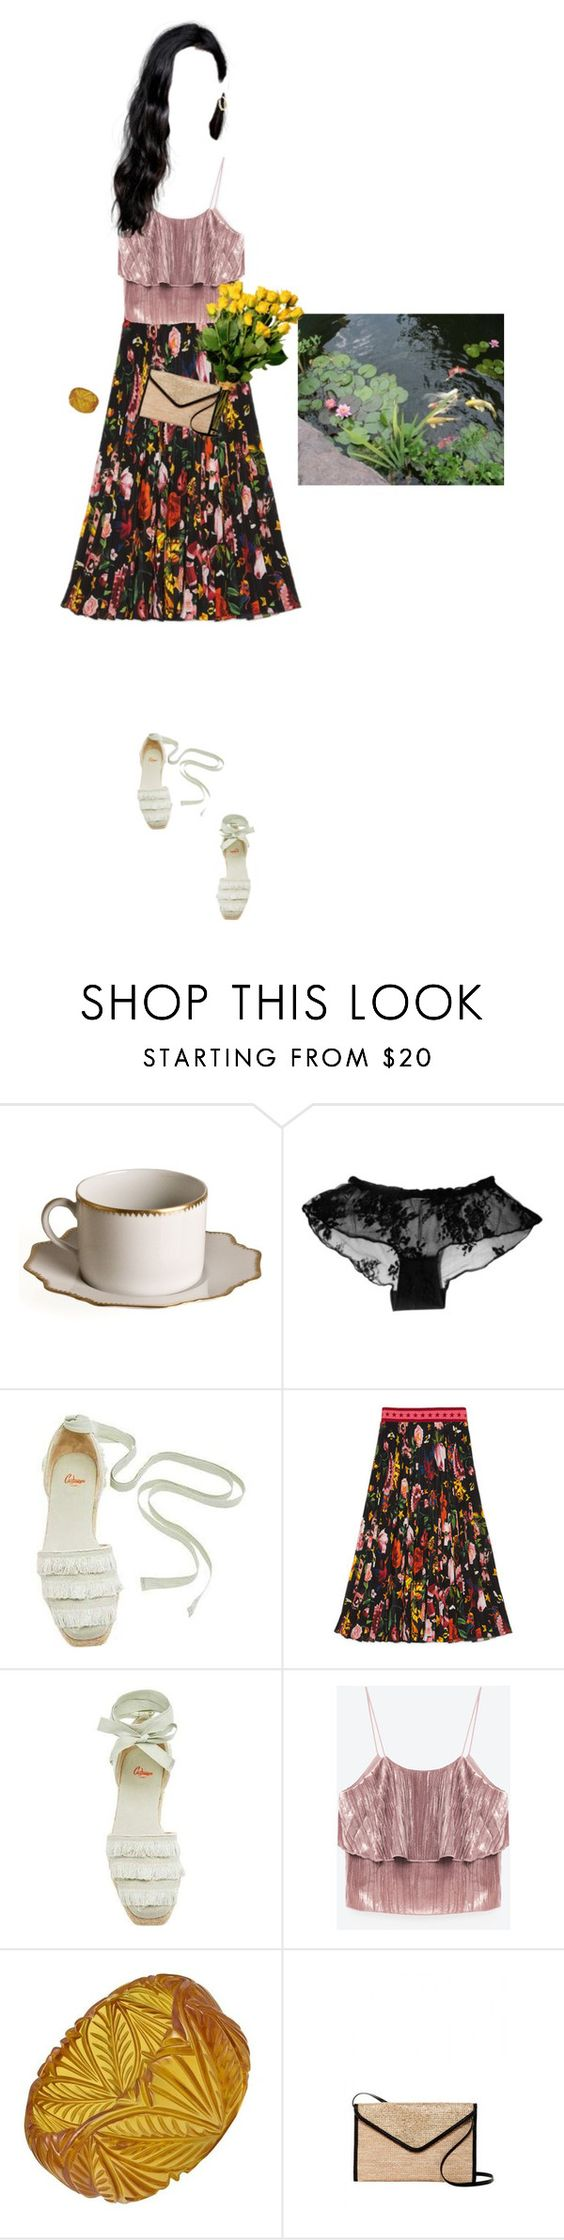 """""""Hanoi girl"""" by ohyou ❤ liked on Polyvore featuring Anna Weatherley, Castañer, Gucci, Magid and Mondevio"""